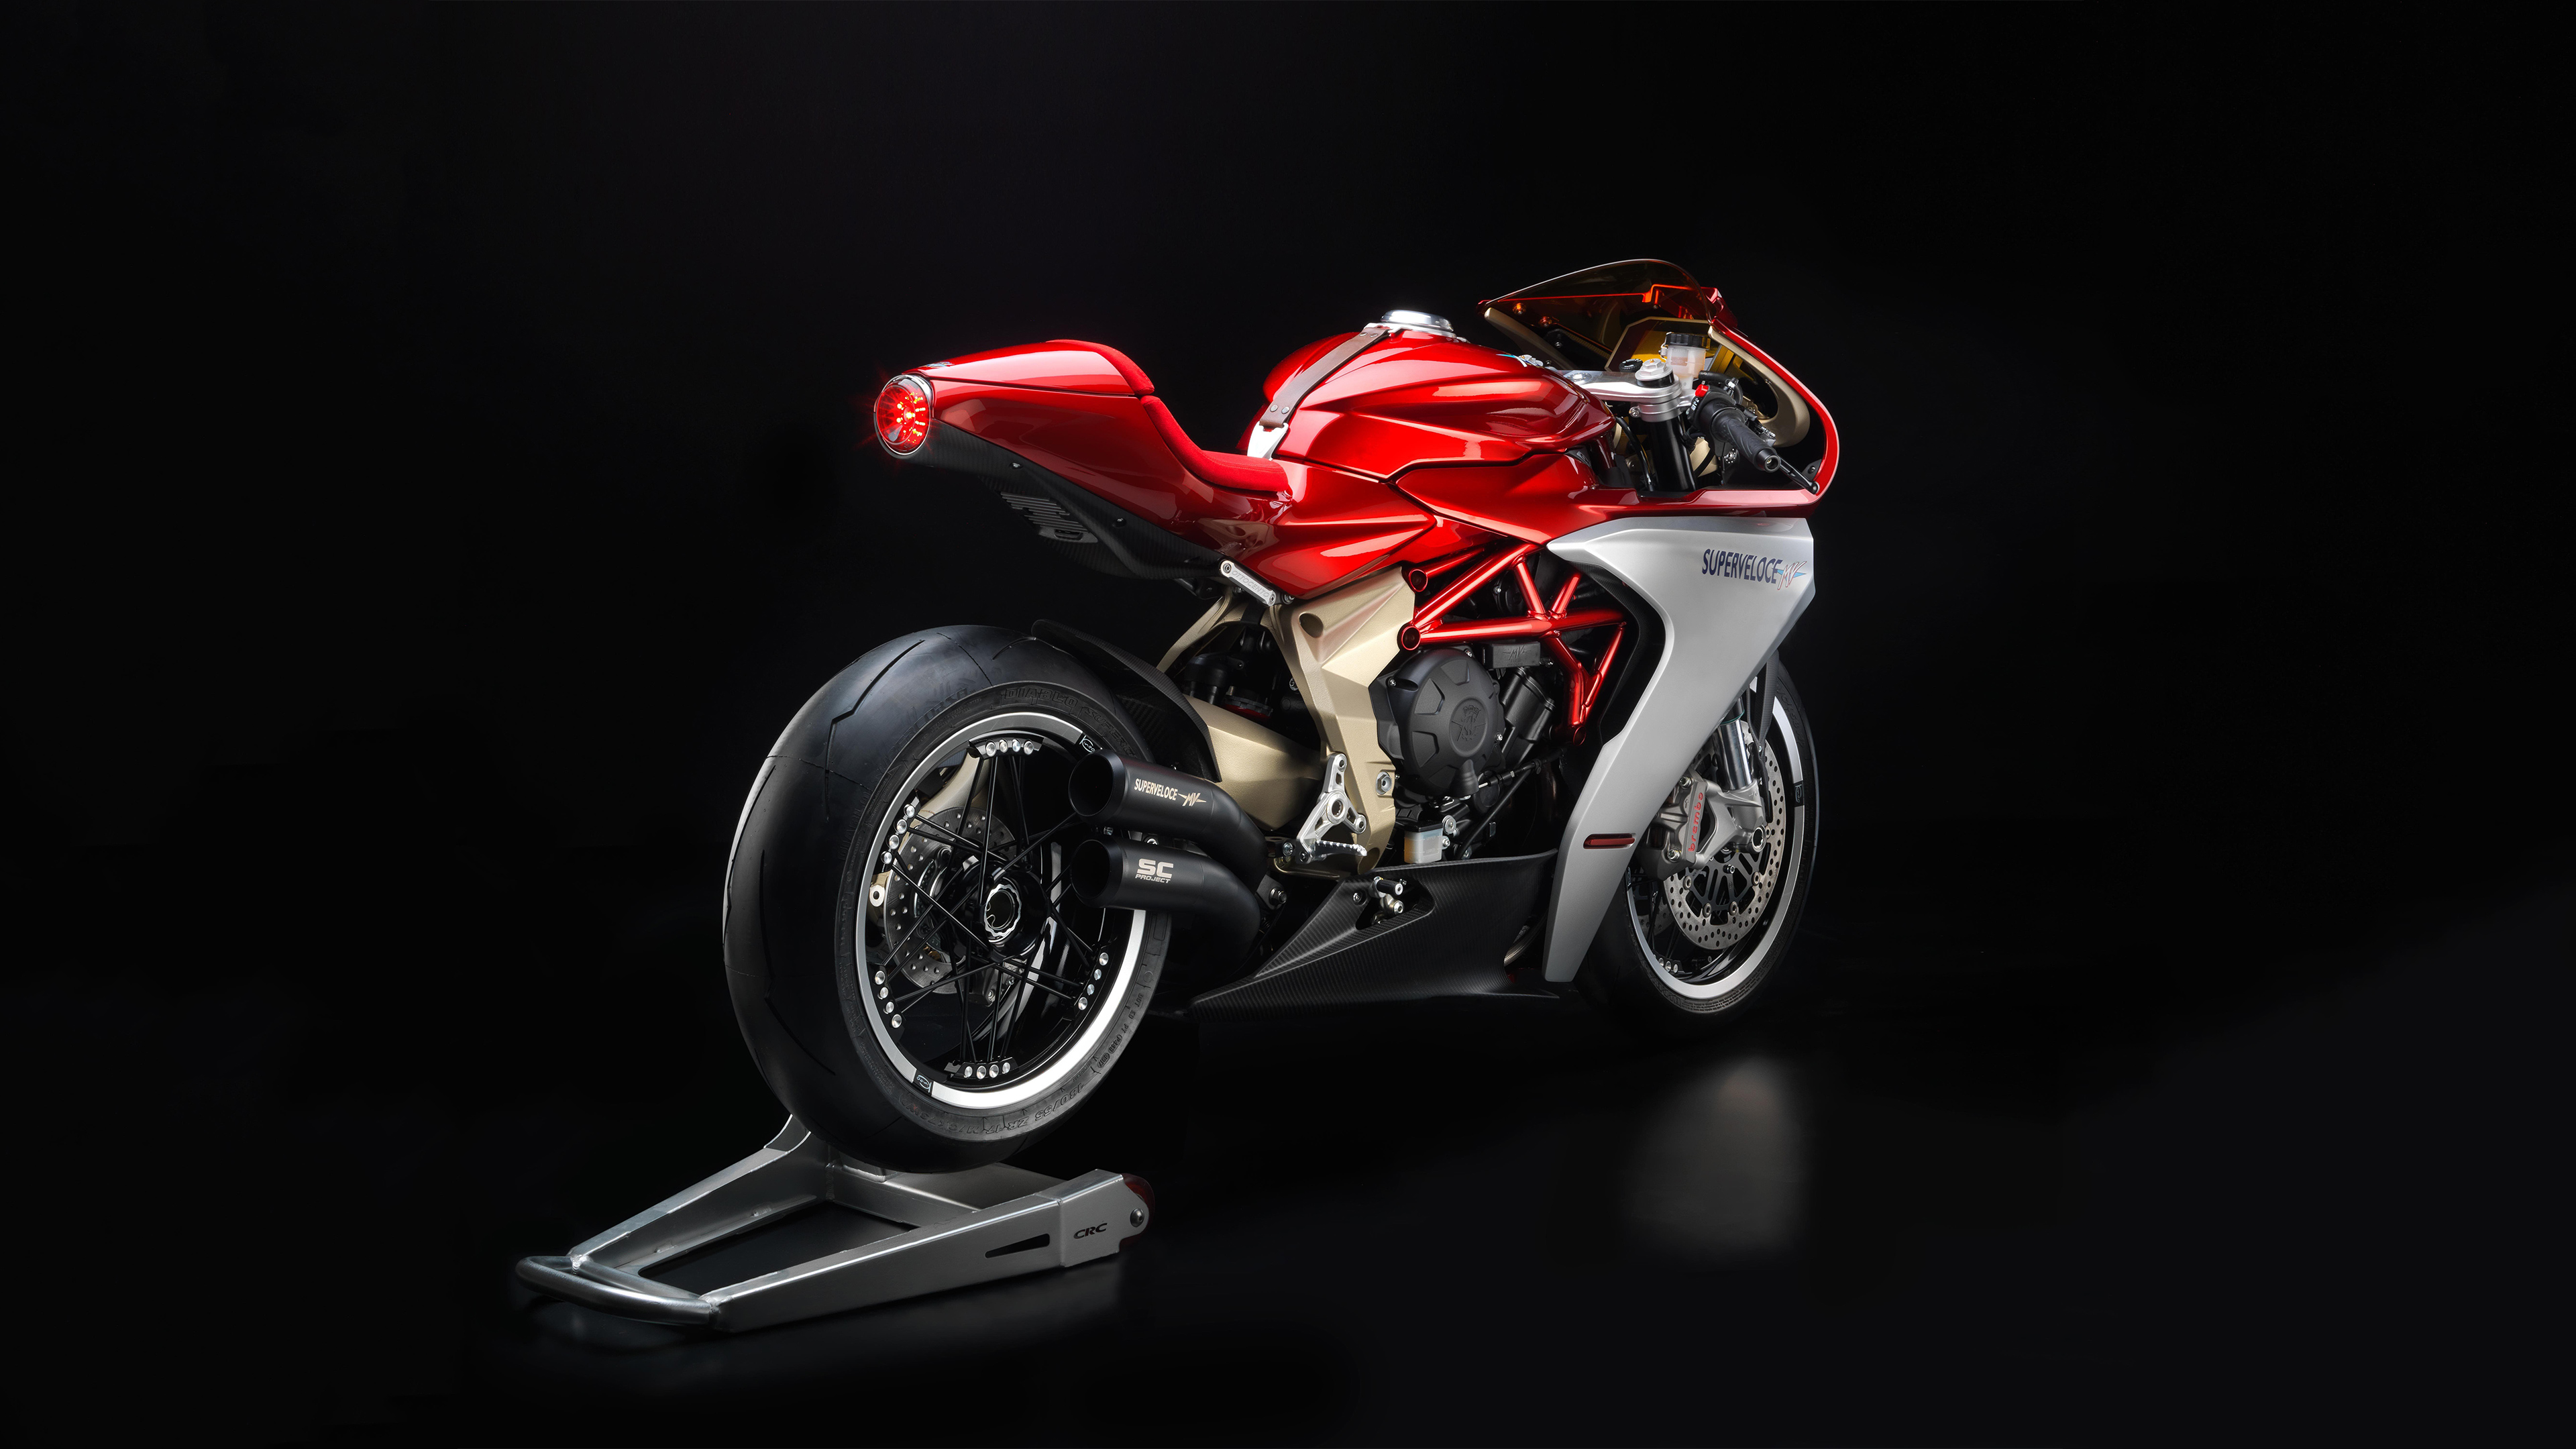 mv agusta superveloce 800 4k 1547937824 - MV Agusta Superveloce 800 4k - mv agusta wallpapers, hd-wallpapers, bikes wallpapers, 4k-wallpapers